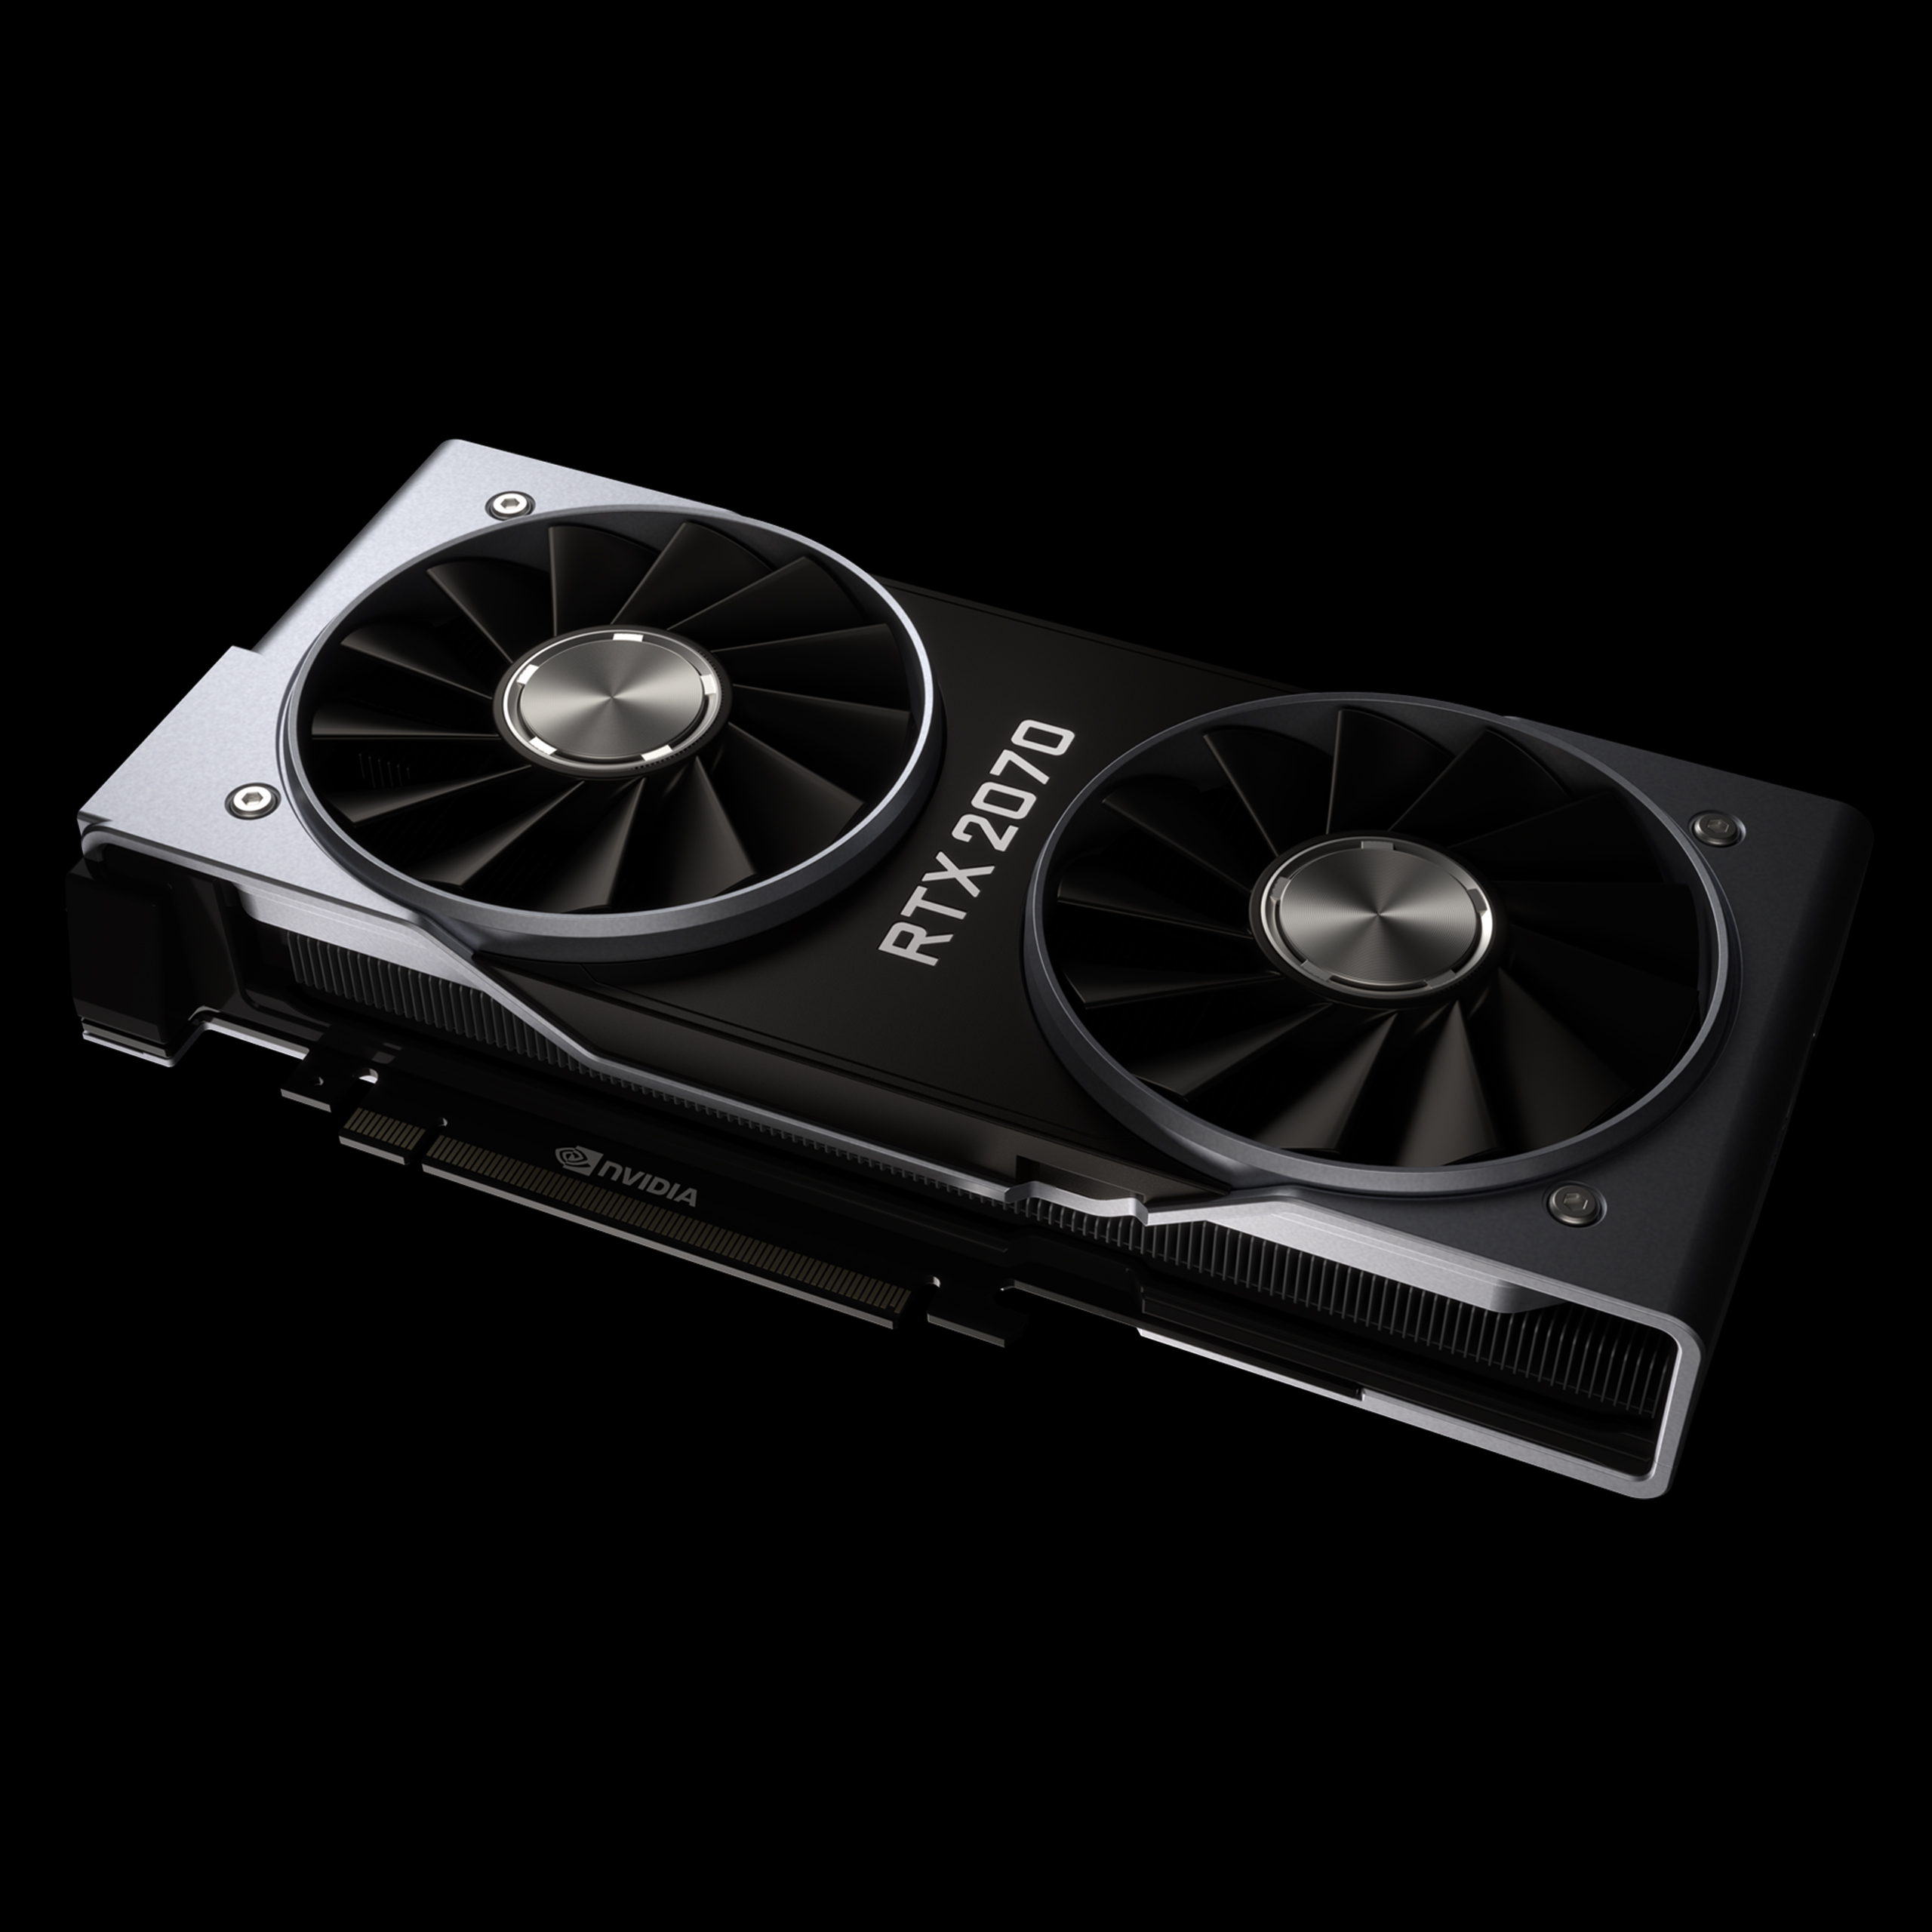 geforce rtx 2070 nvidia